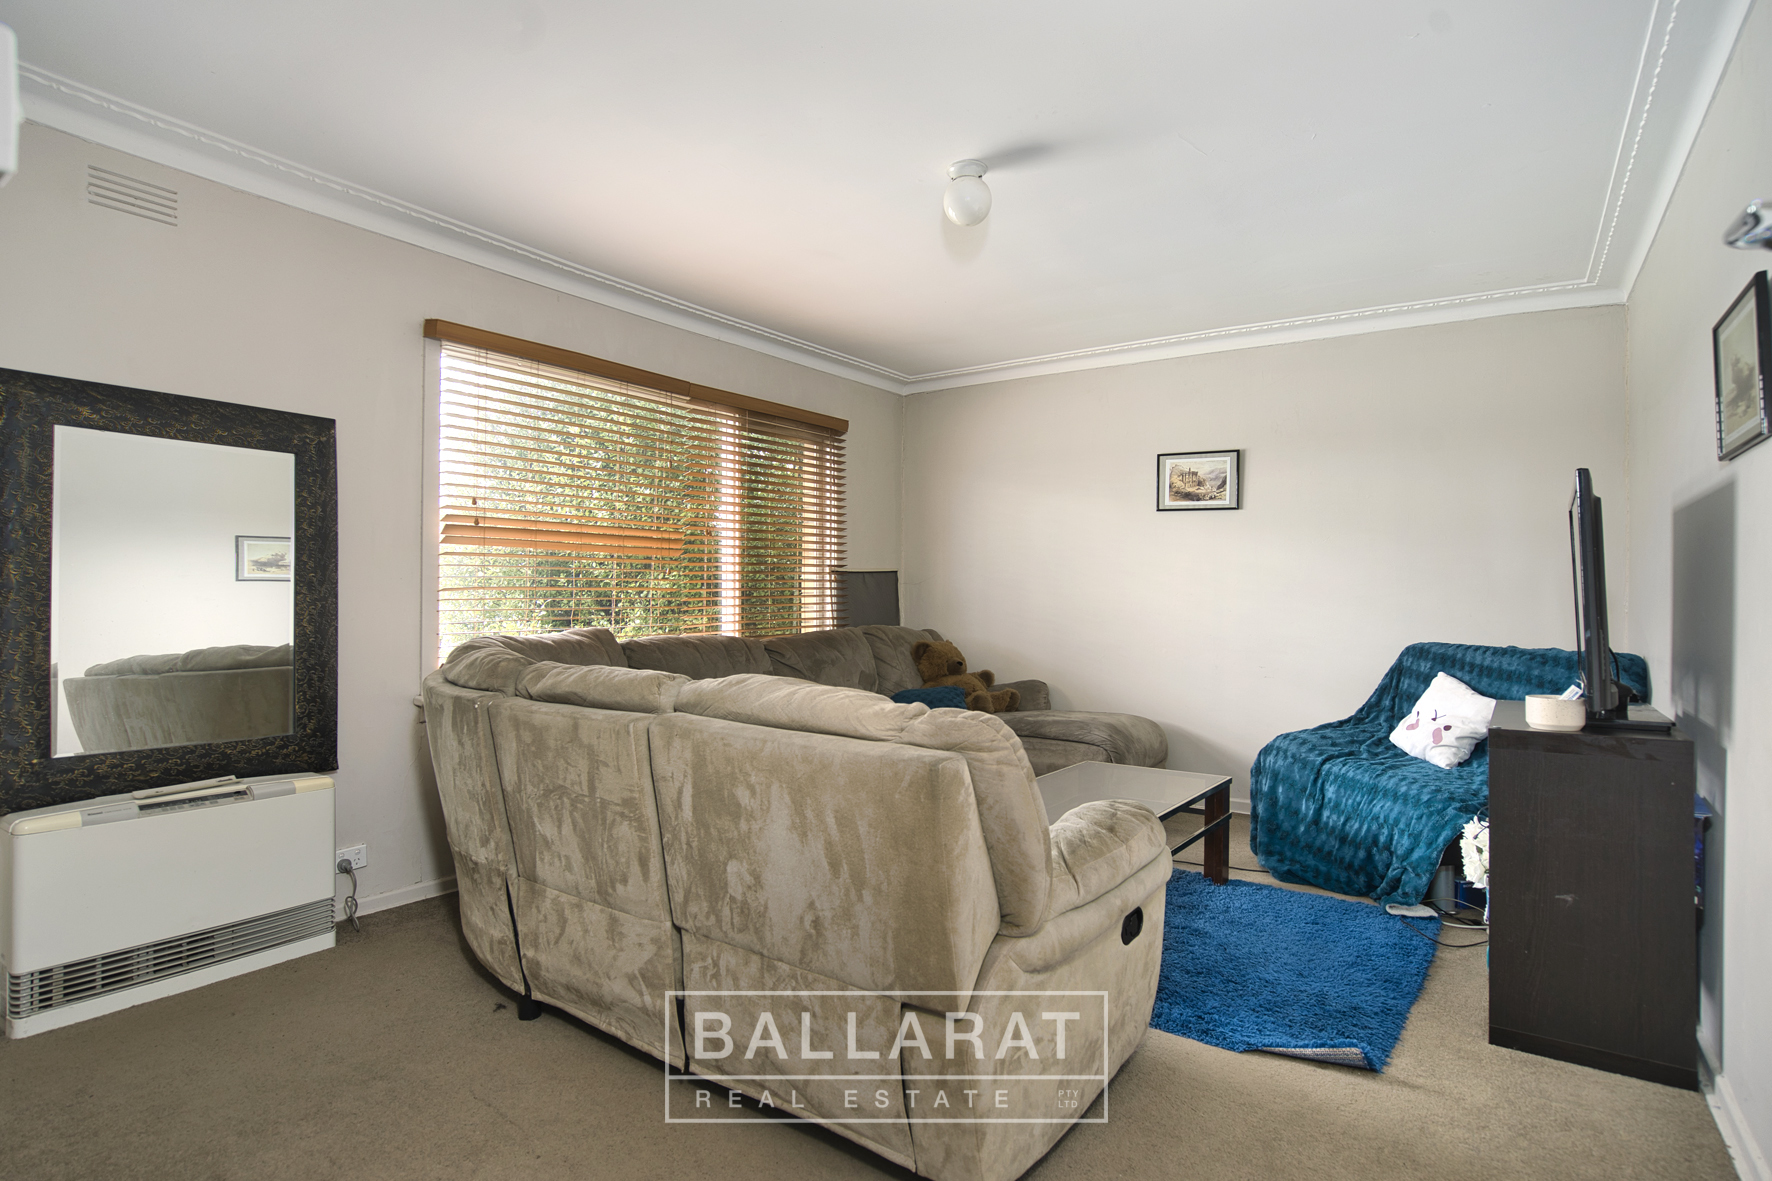 7/509 Drummond Street South Ballarat Central